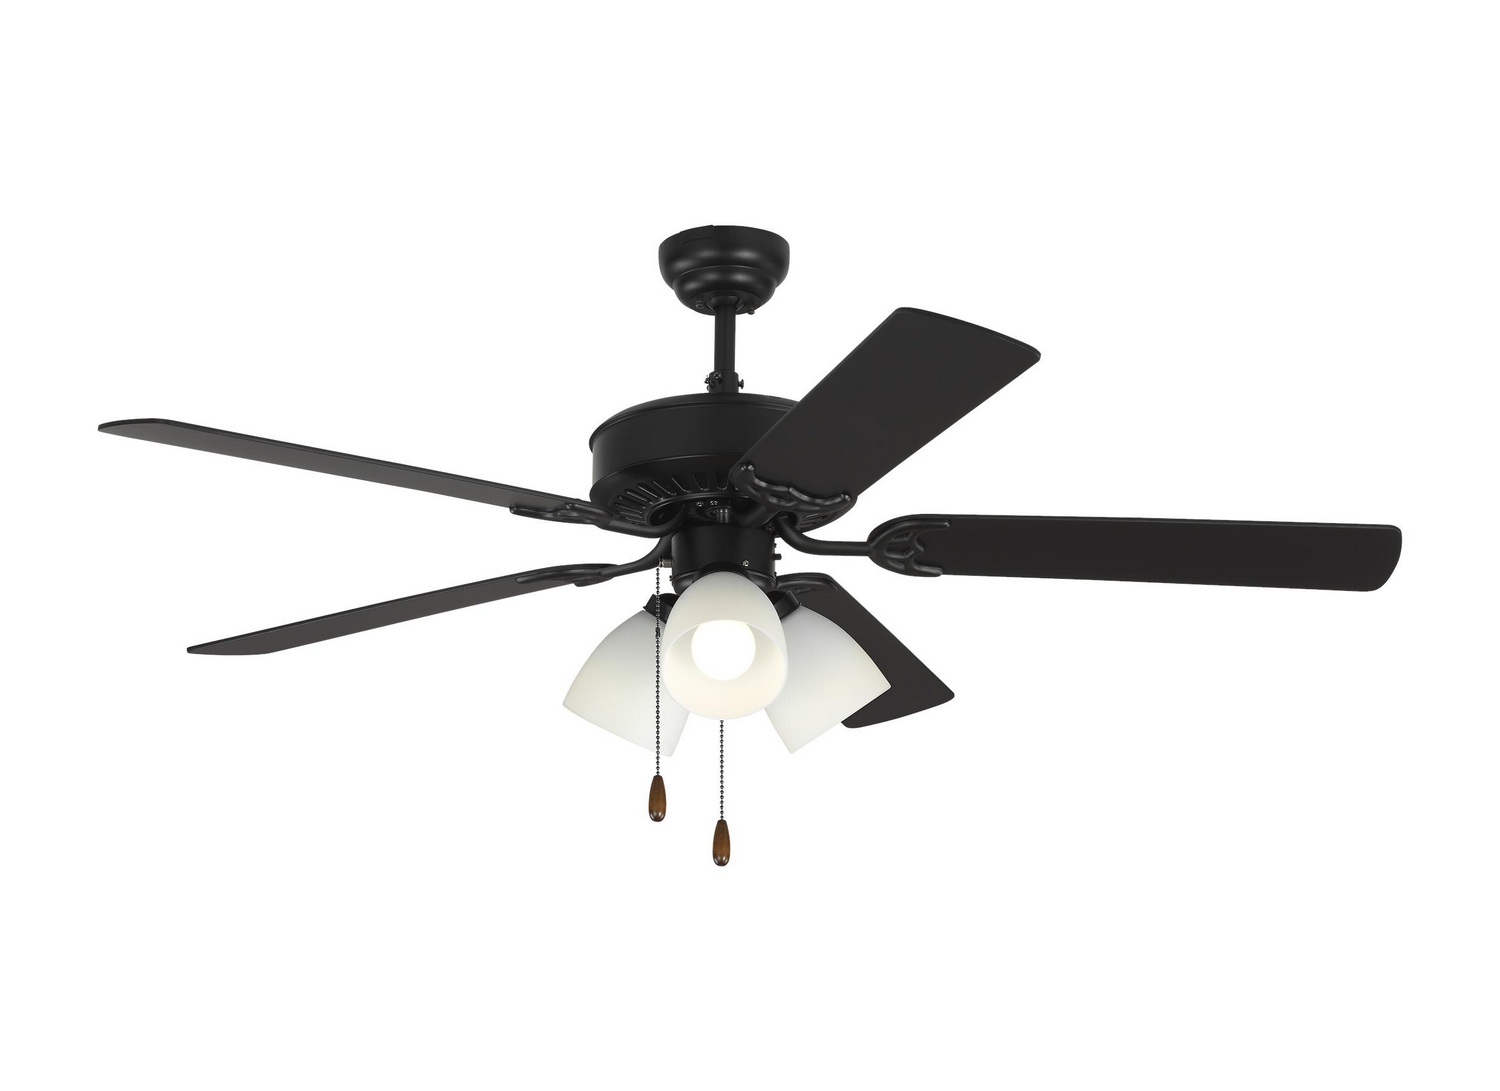 52 inchCeiling Fan from the Haven 52 LED 3 collection by Monte Carlo 5HV52BKF